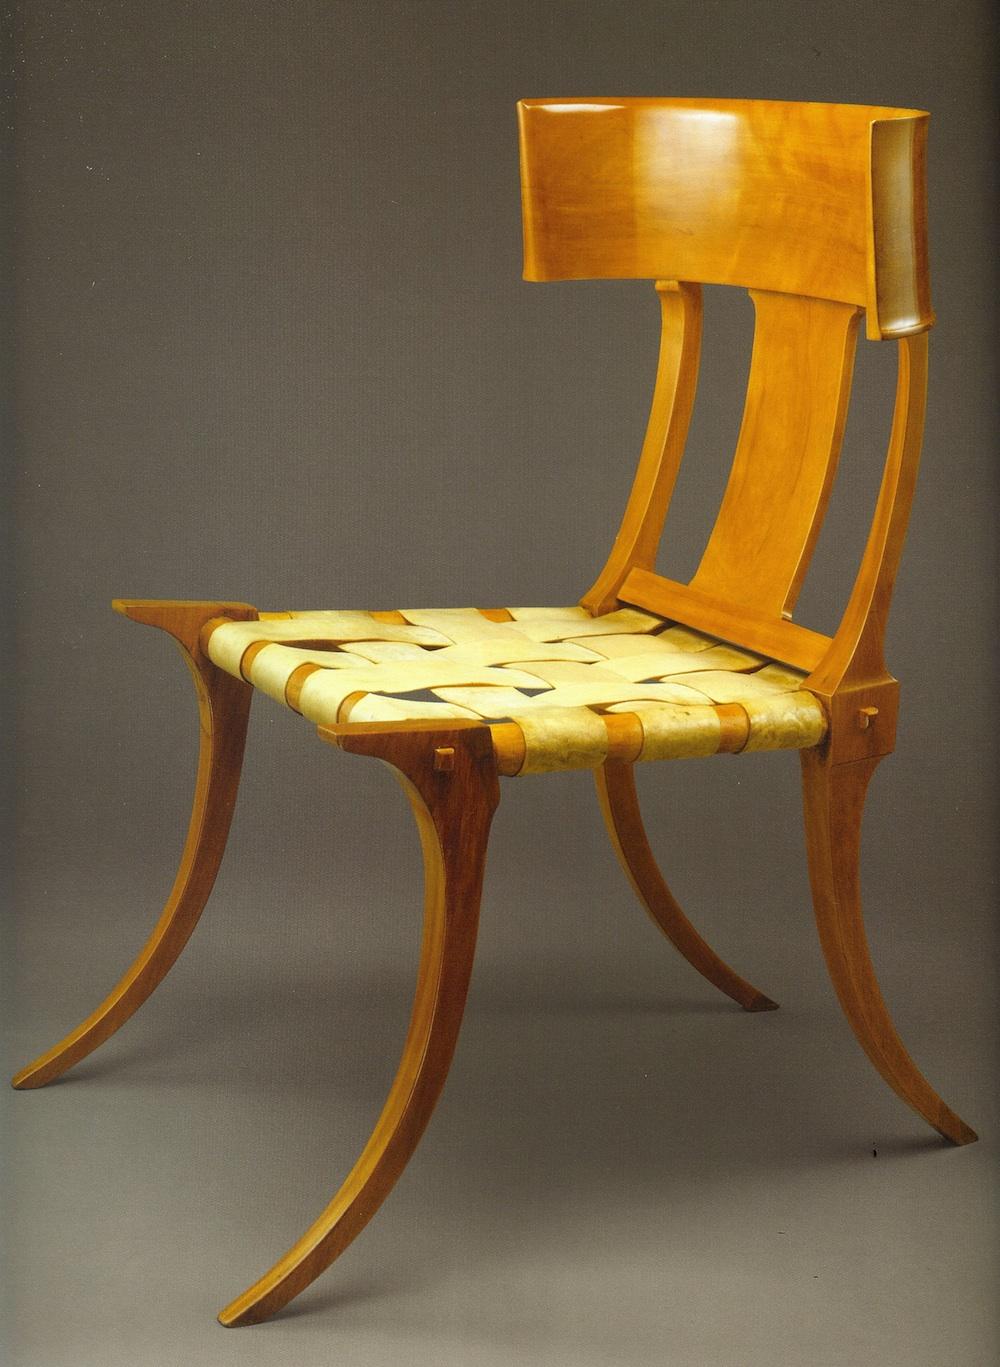 Ancient greece furniture - Klismos Chair From Ancient Greece Gallery For Ancient Greek Furniture